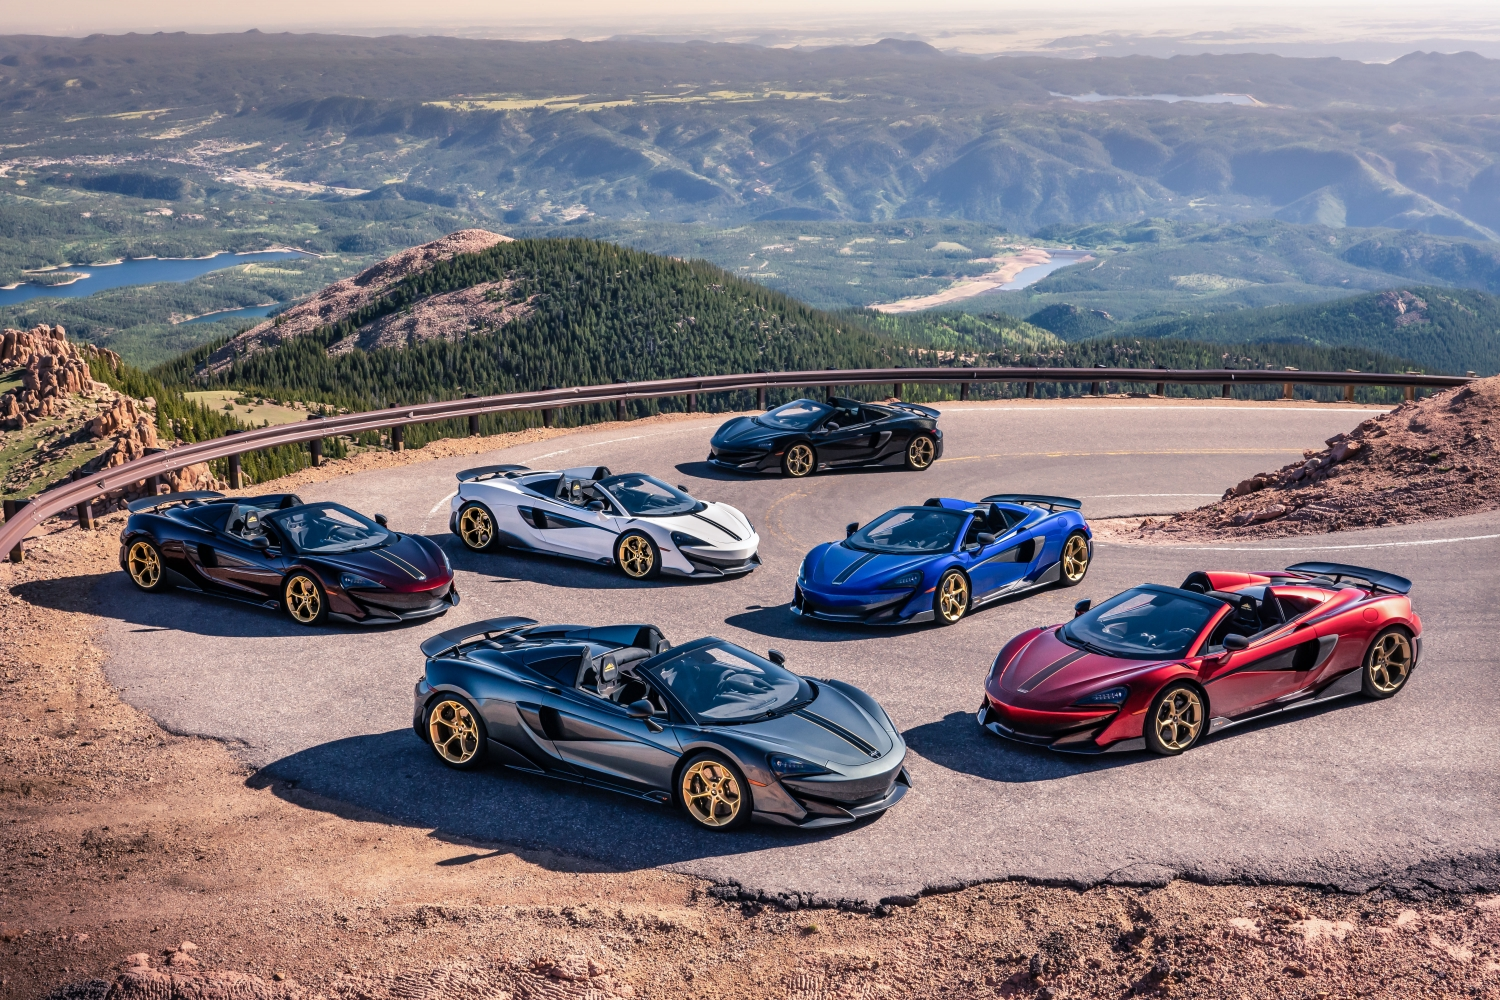 6 x 600LT Spiders 'Pikes Peak Collection' for McLaren Denver